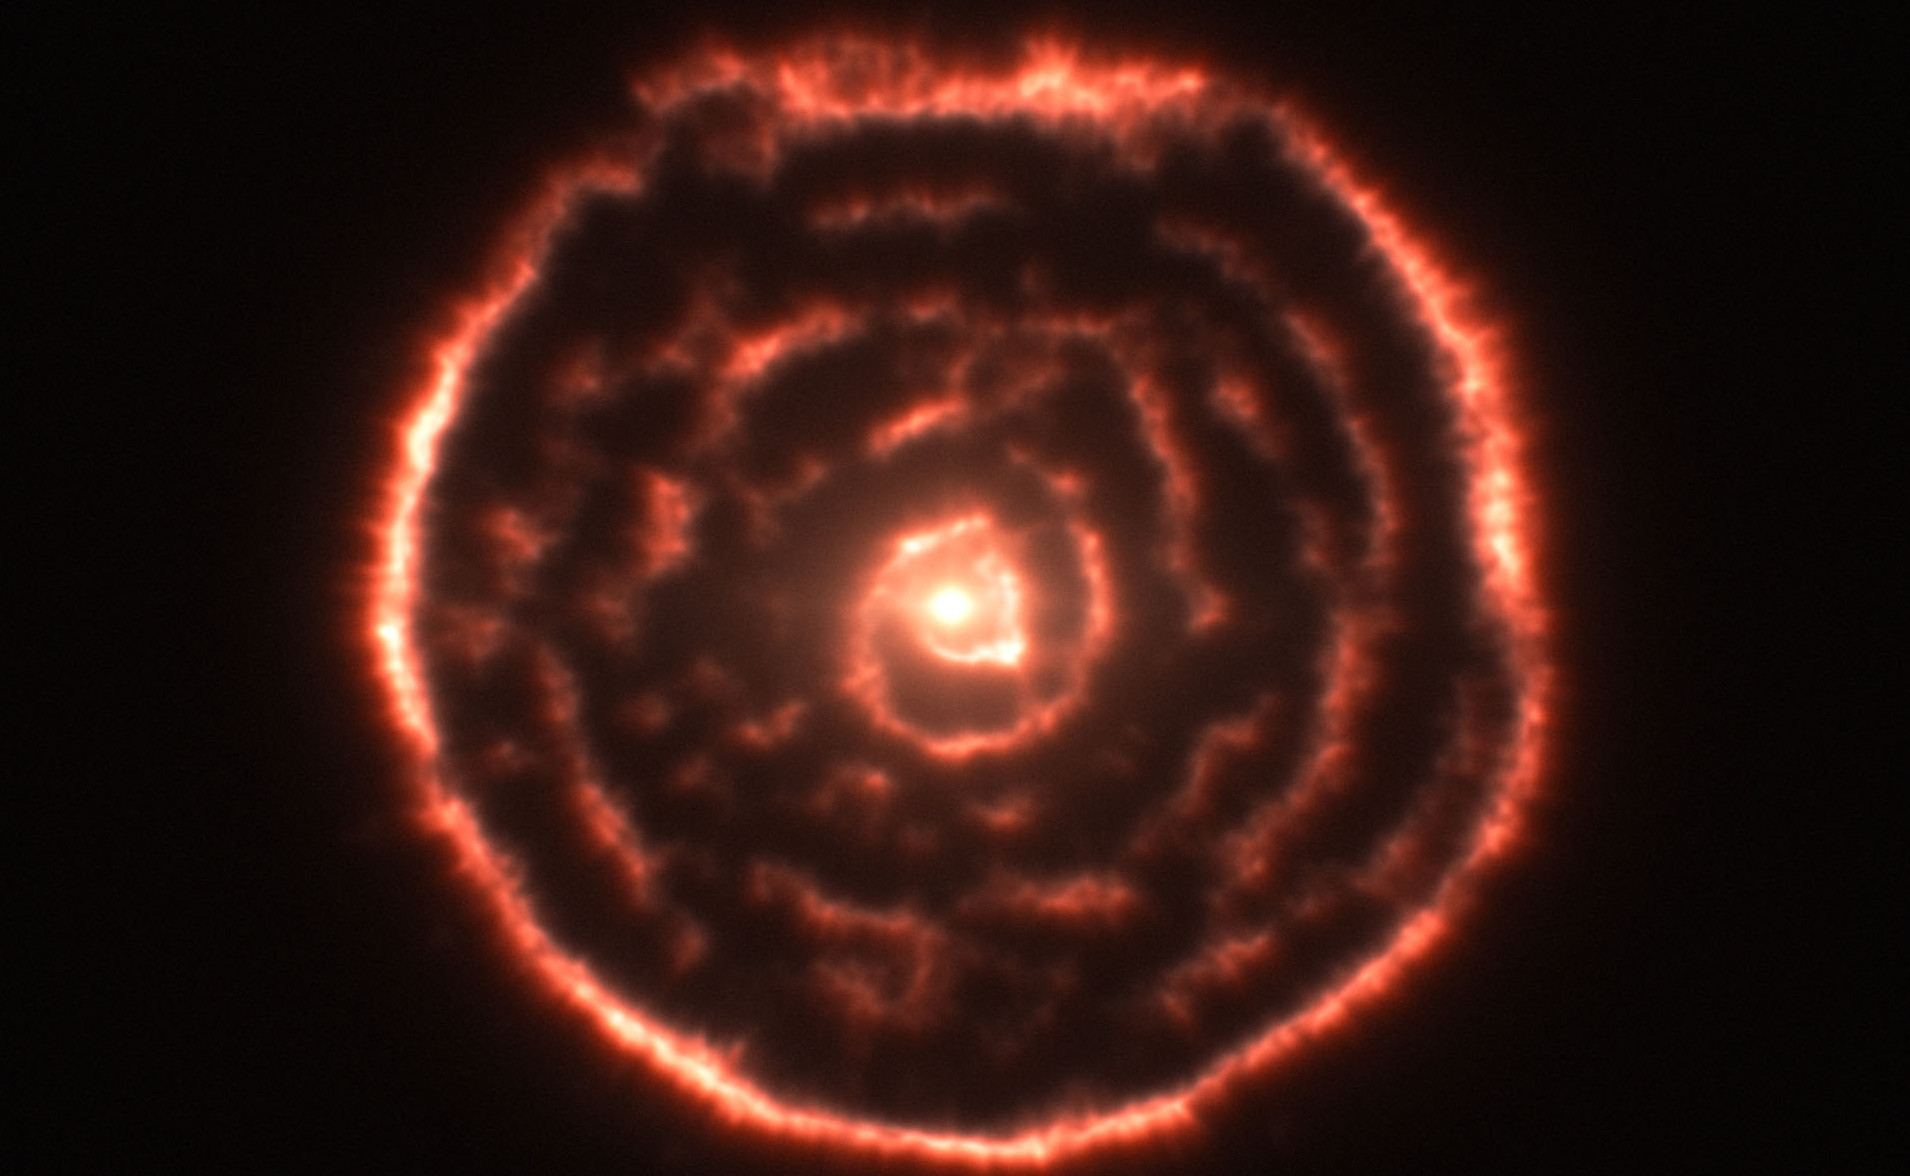 Observations using the Atacama Large Millimeter/submillimeter Array (ALMA) have revealed an unexpected spiral structure in the material around the old star R Sculptoris. This feature has never been seen before and is probably caused by a hidden companion star orbiting the star. This slice through the new ALMA data reveals the shell around the star, which shows up as the outer circular ring, as well as a very clear spiral structure in the inner material.